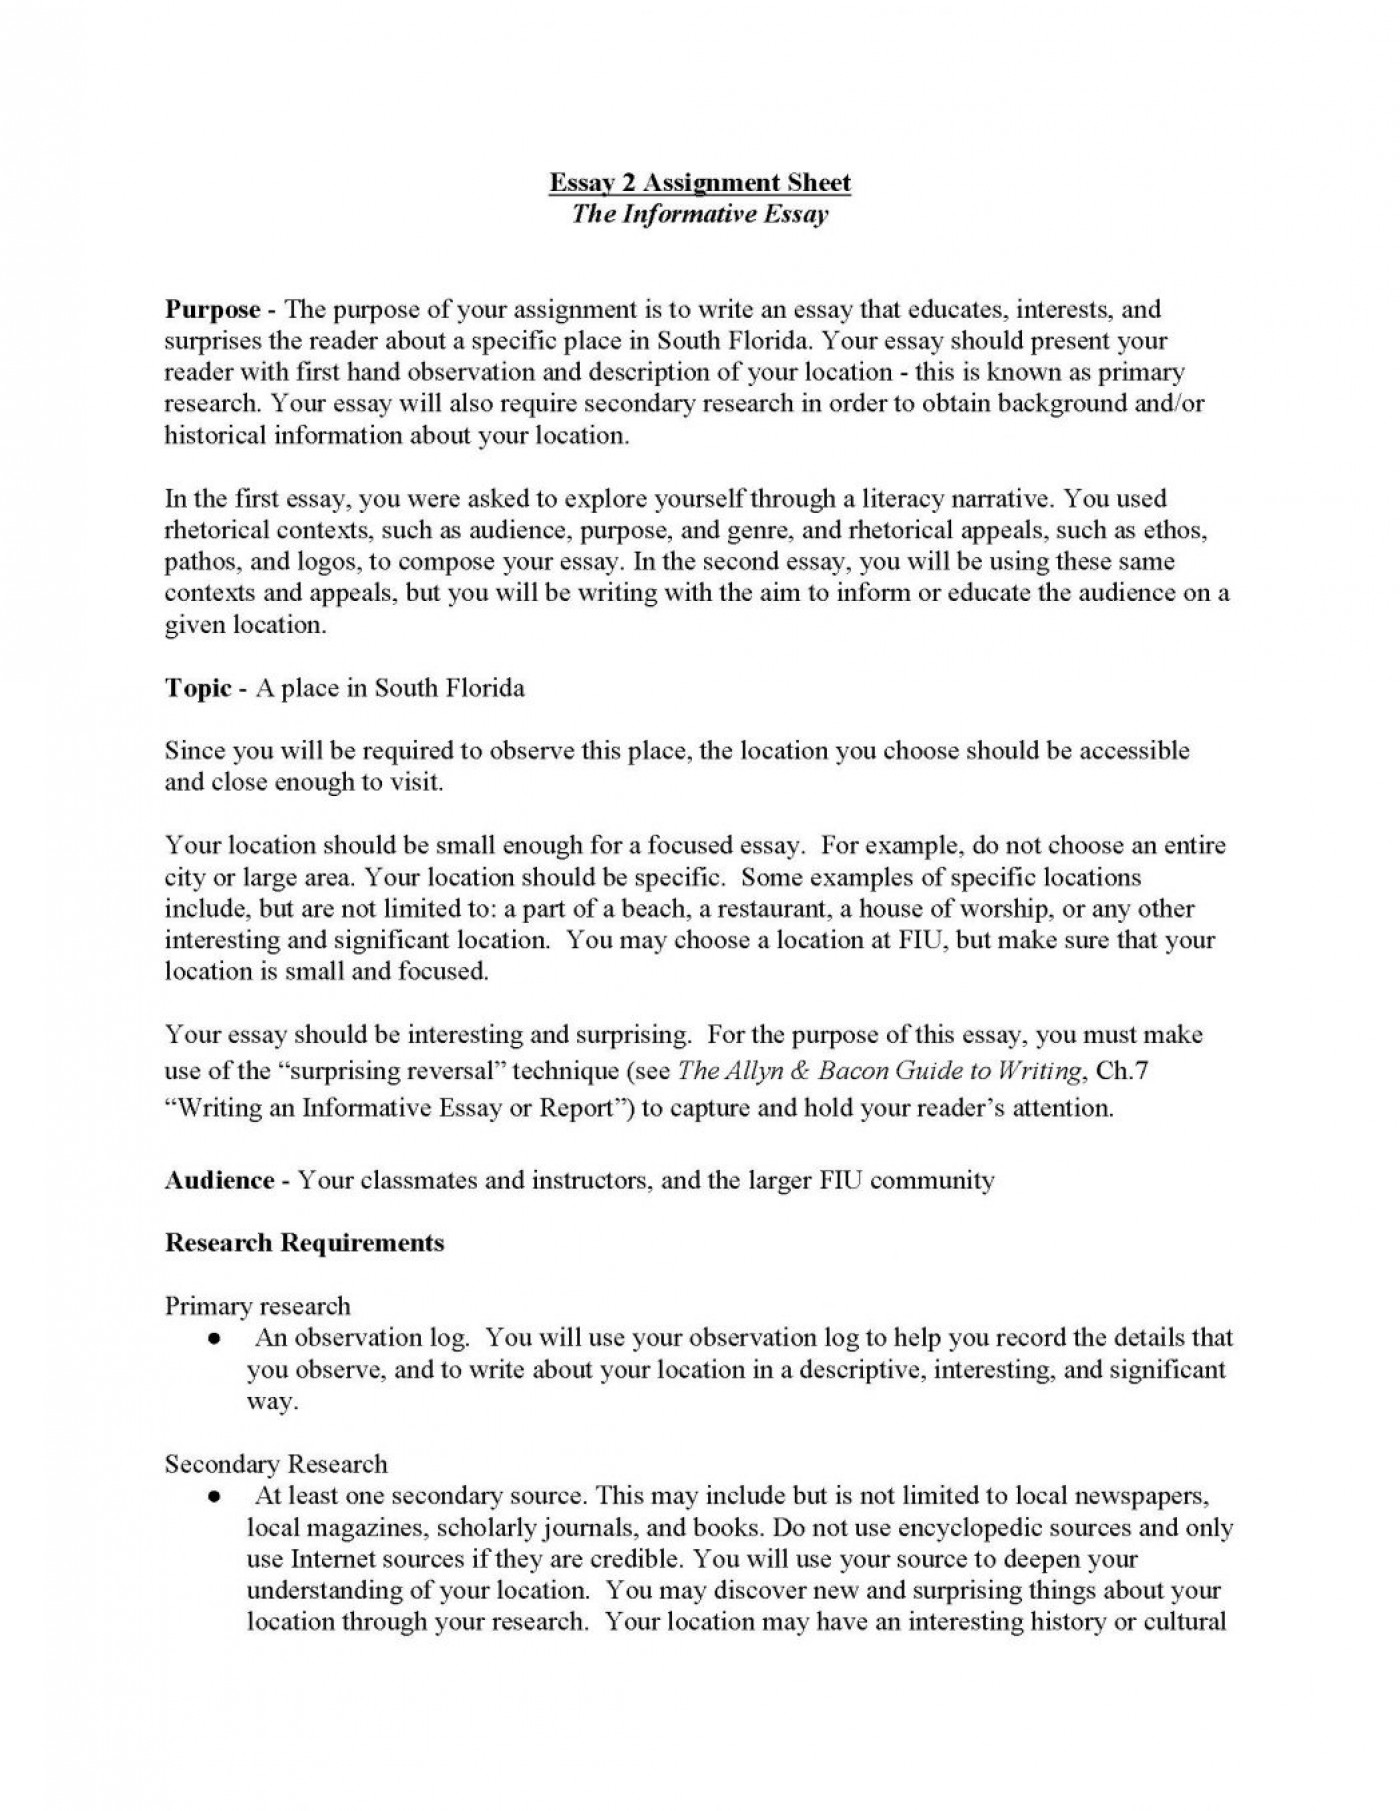 014 Essay Example How To Write This I Believe Synthesis Topic Ideas Informative Research Topics Samples Unit Assignment P Good Template Fantastic A What On Things 1400